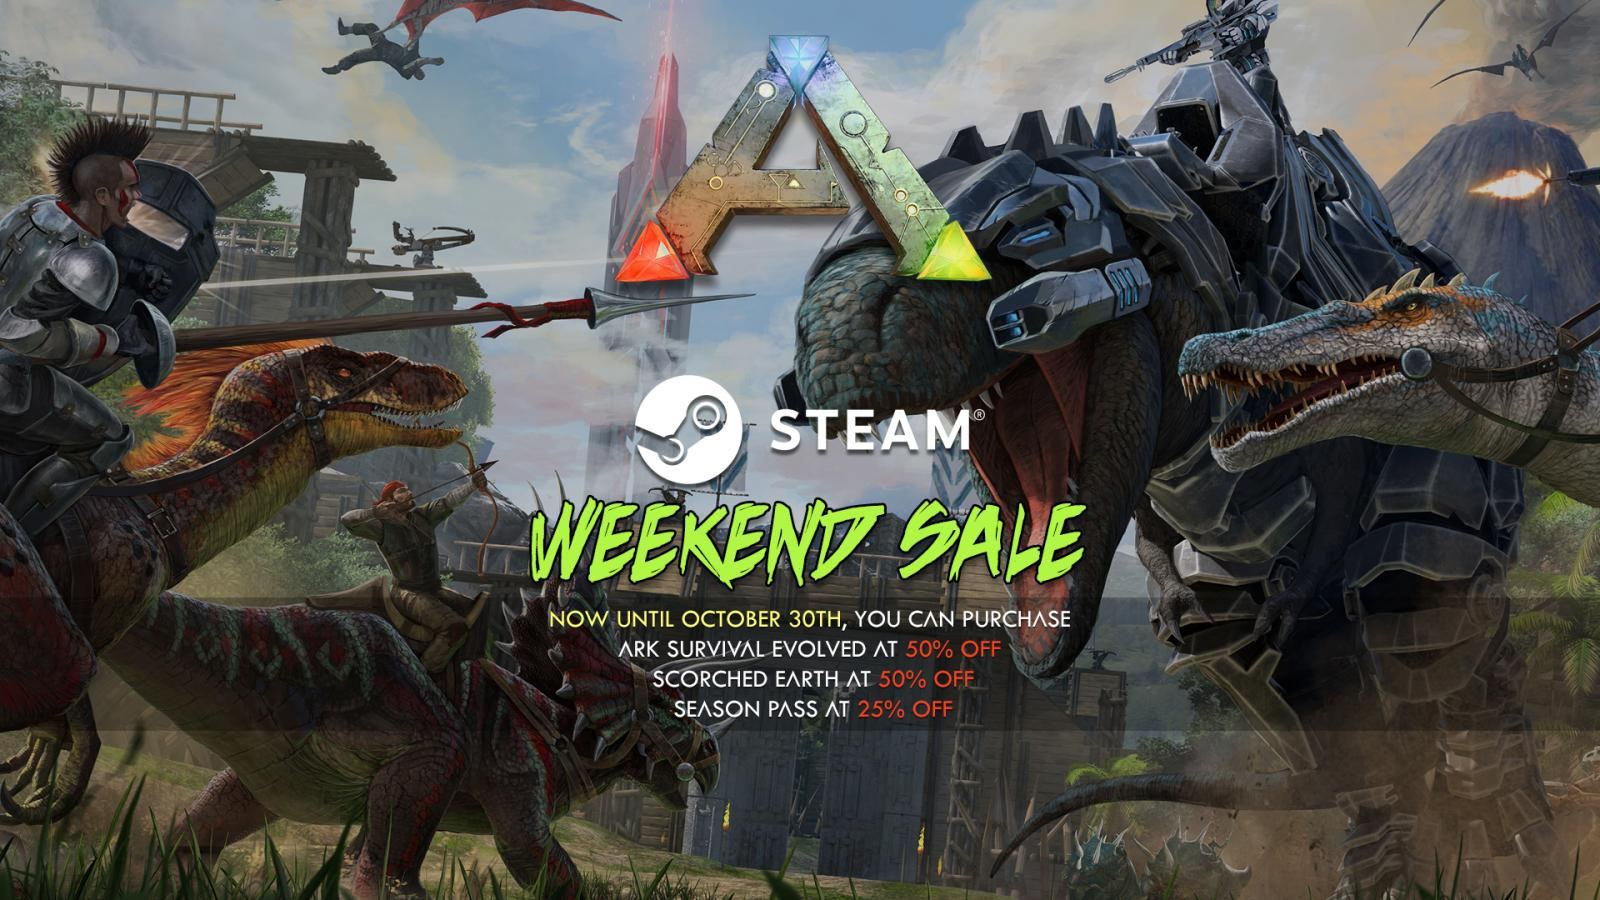 large.steam-sale.jpg.b7acd75c76076d4d160